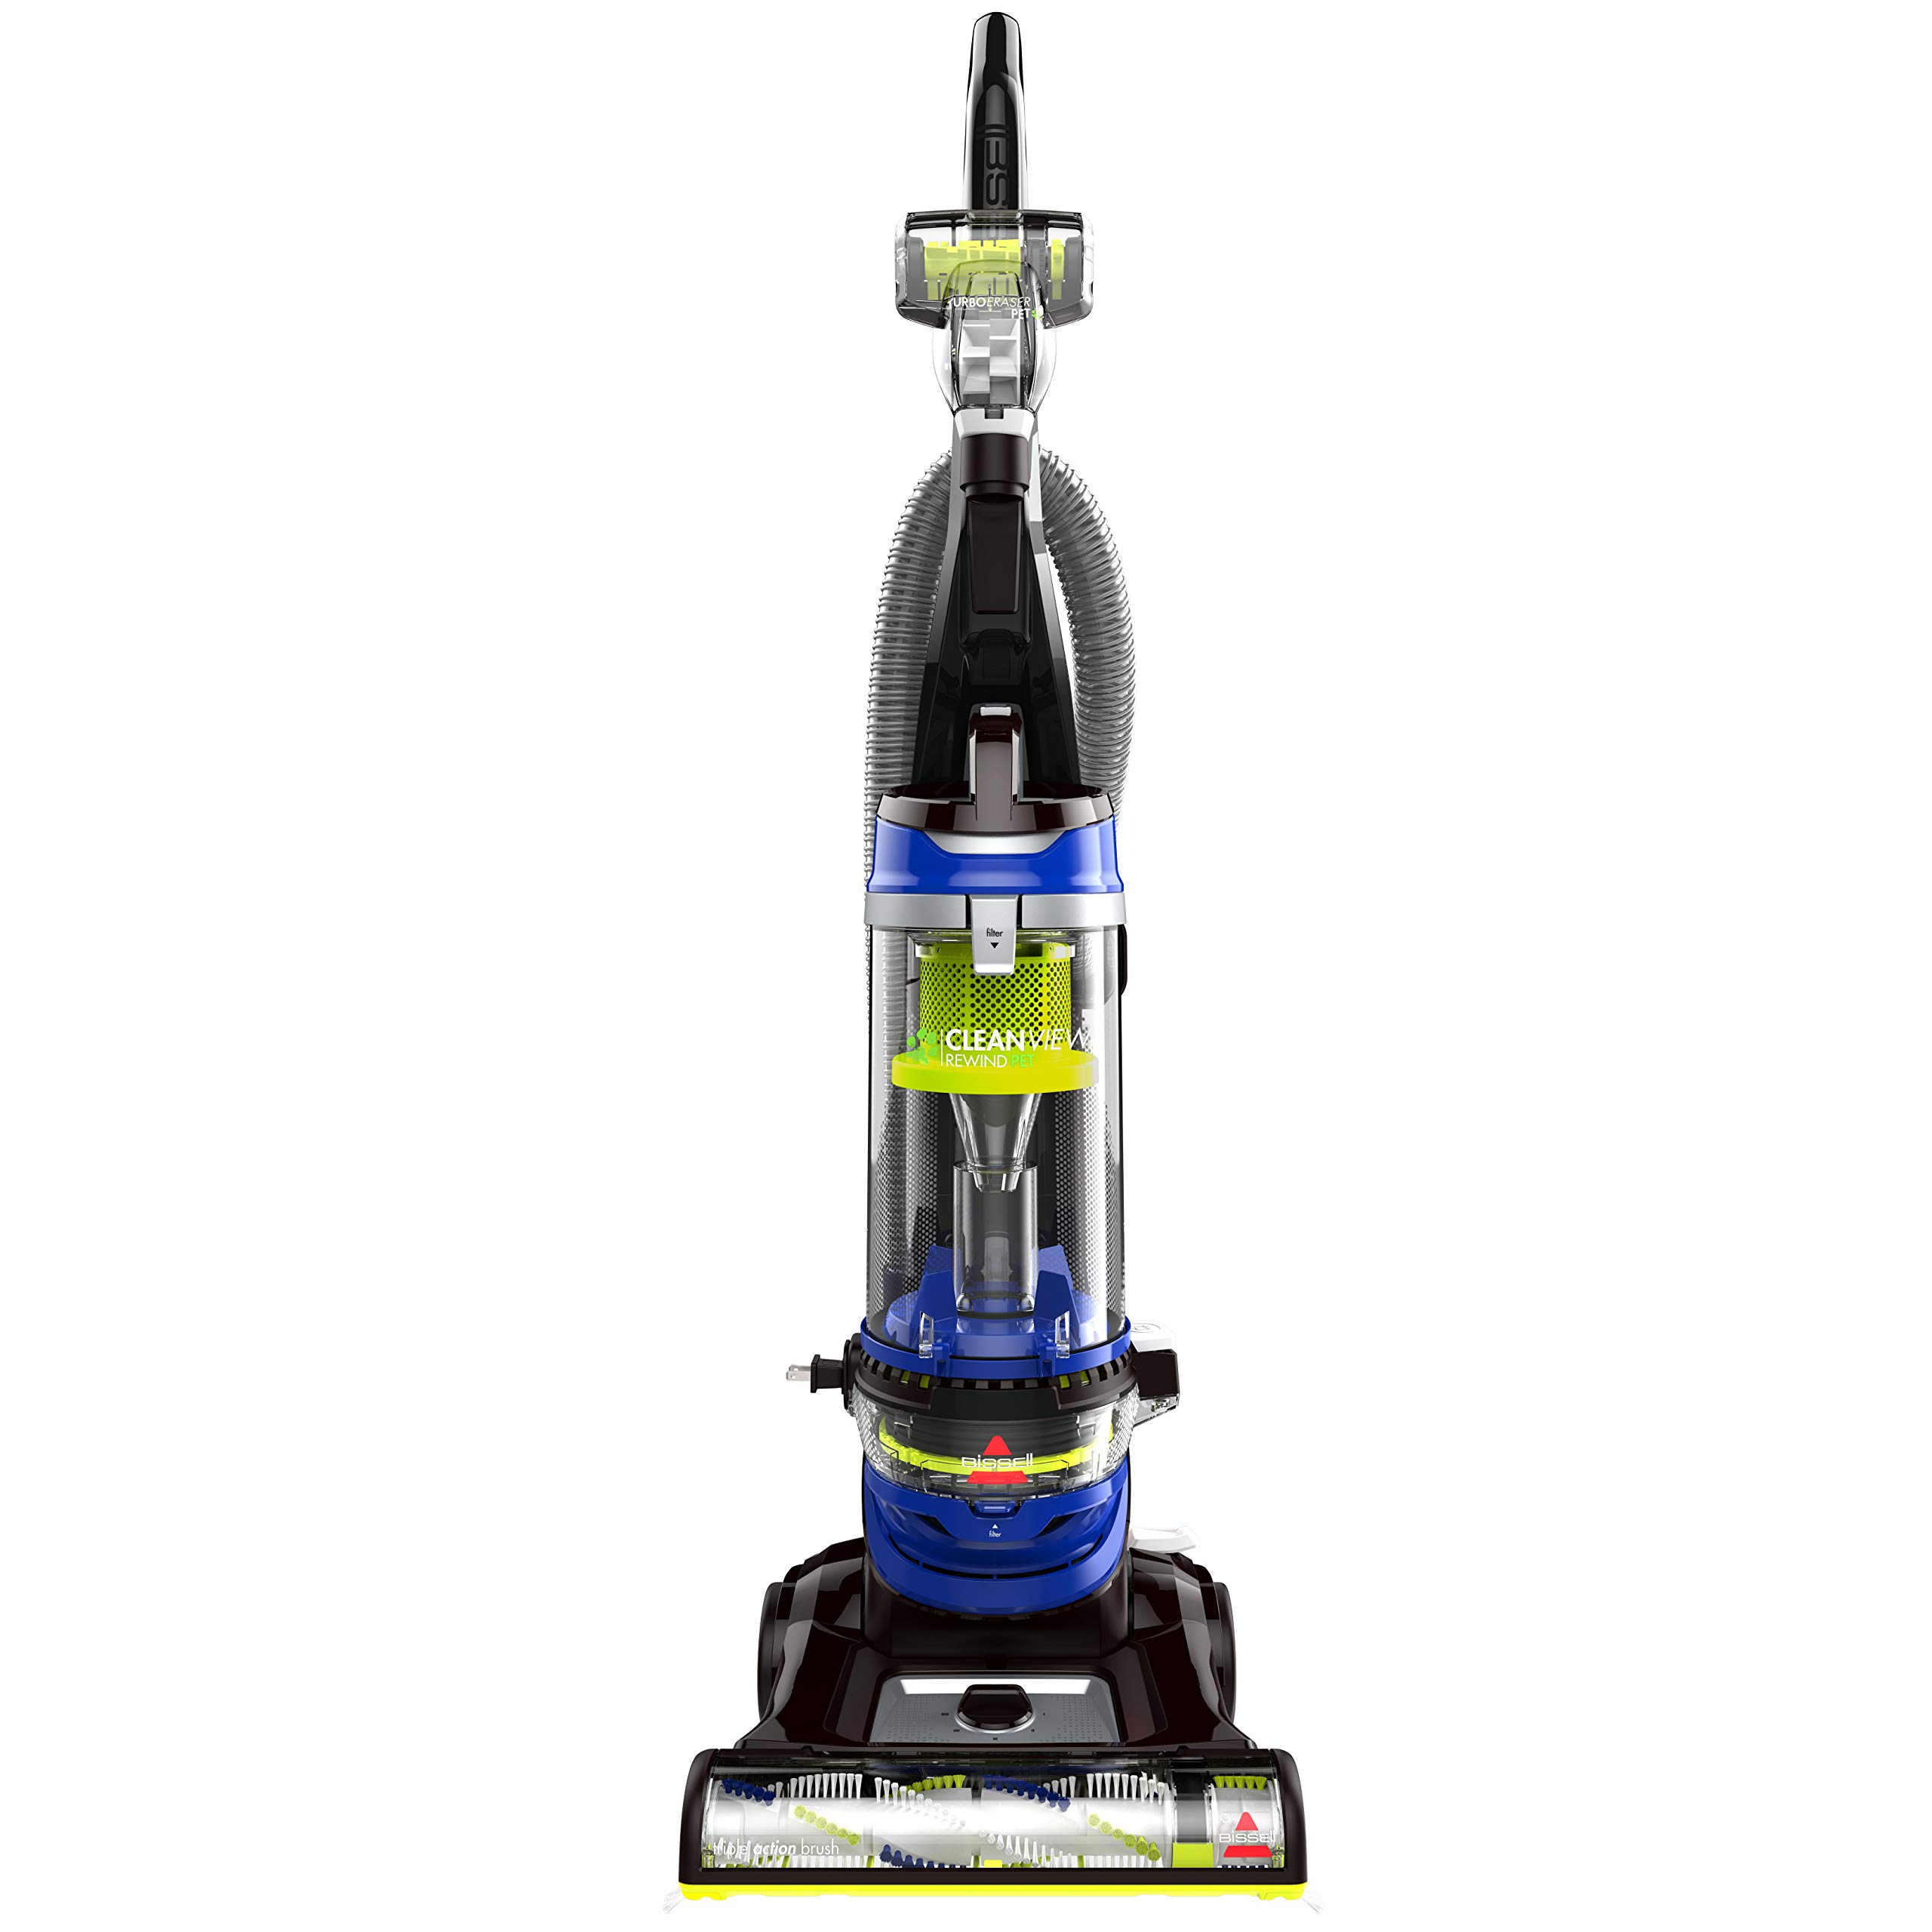 BISSELL Cleanview Rewind Pet Bagless Vacuum Cleaner, 2489, Blue by Bissell